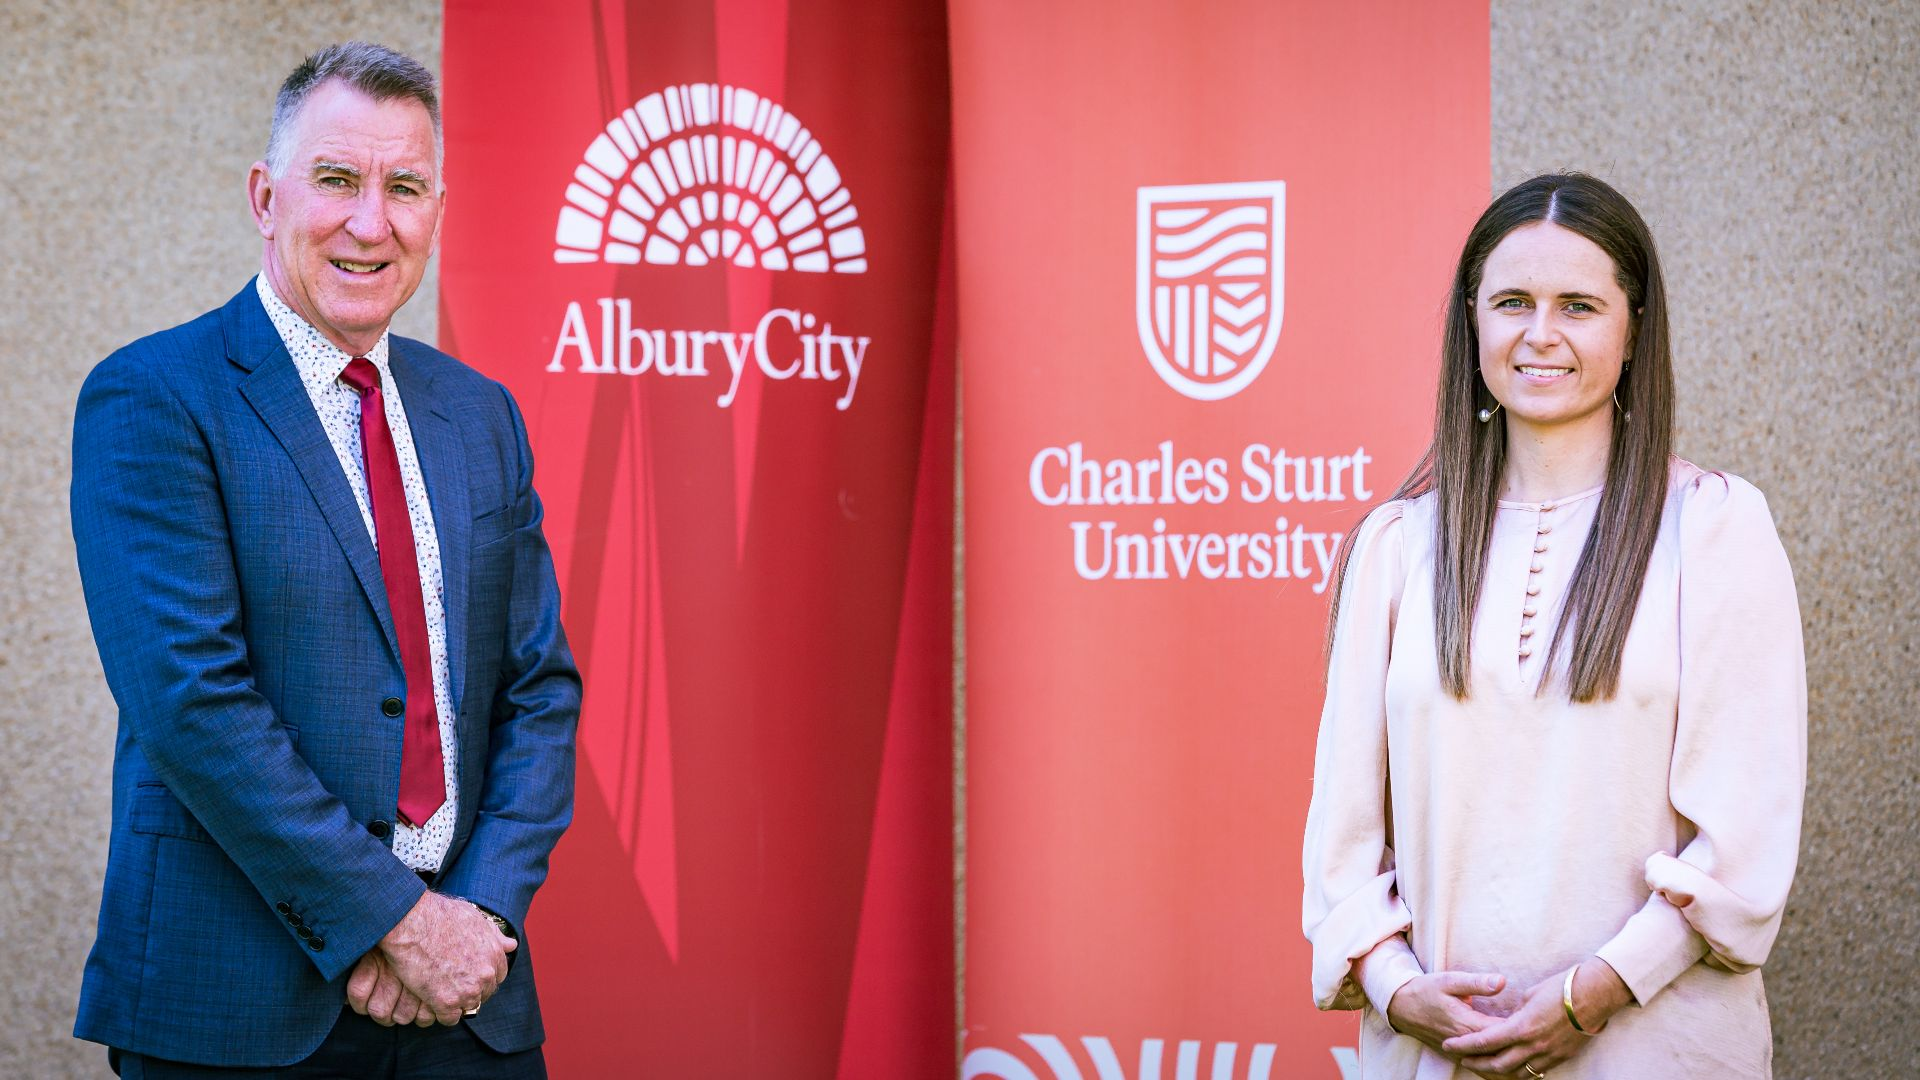 Applications now open for innovative Charles Sturt and AlburyCity Council scholarship program